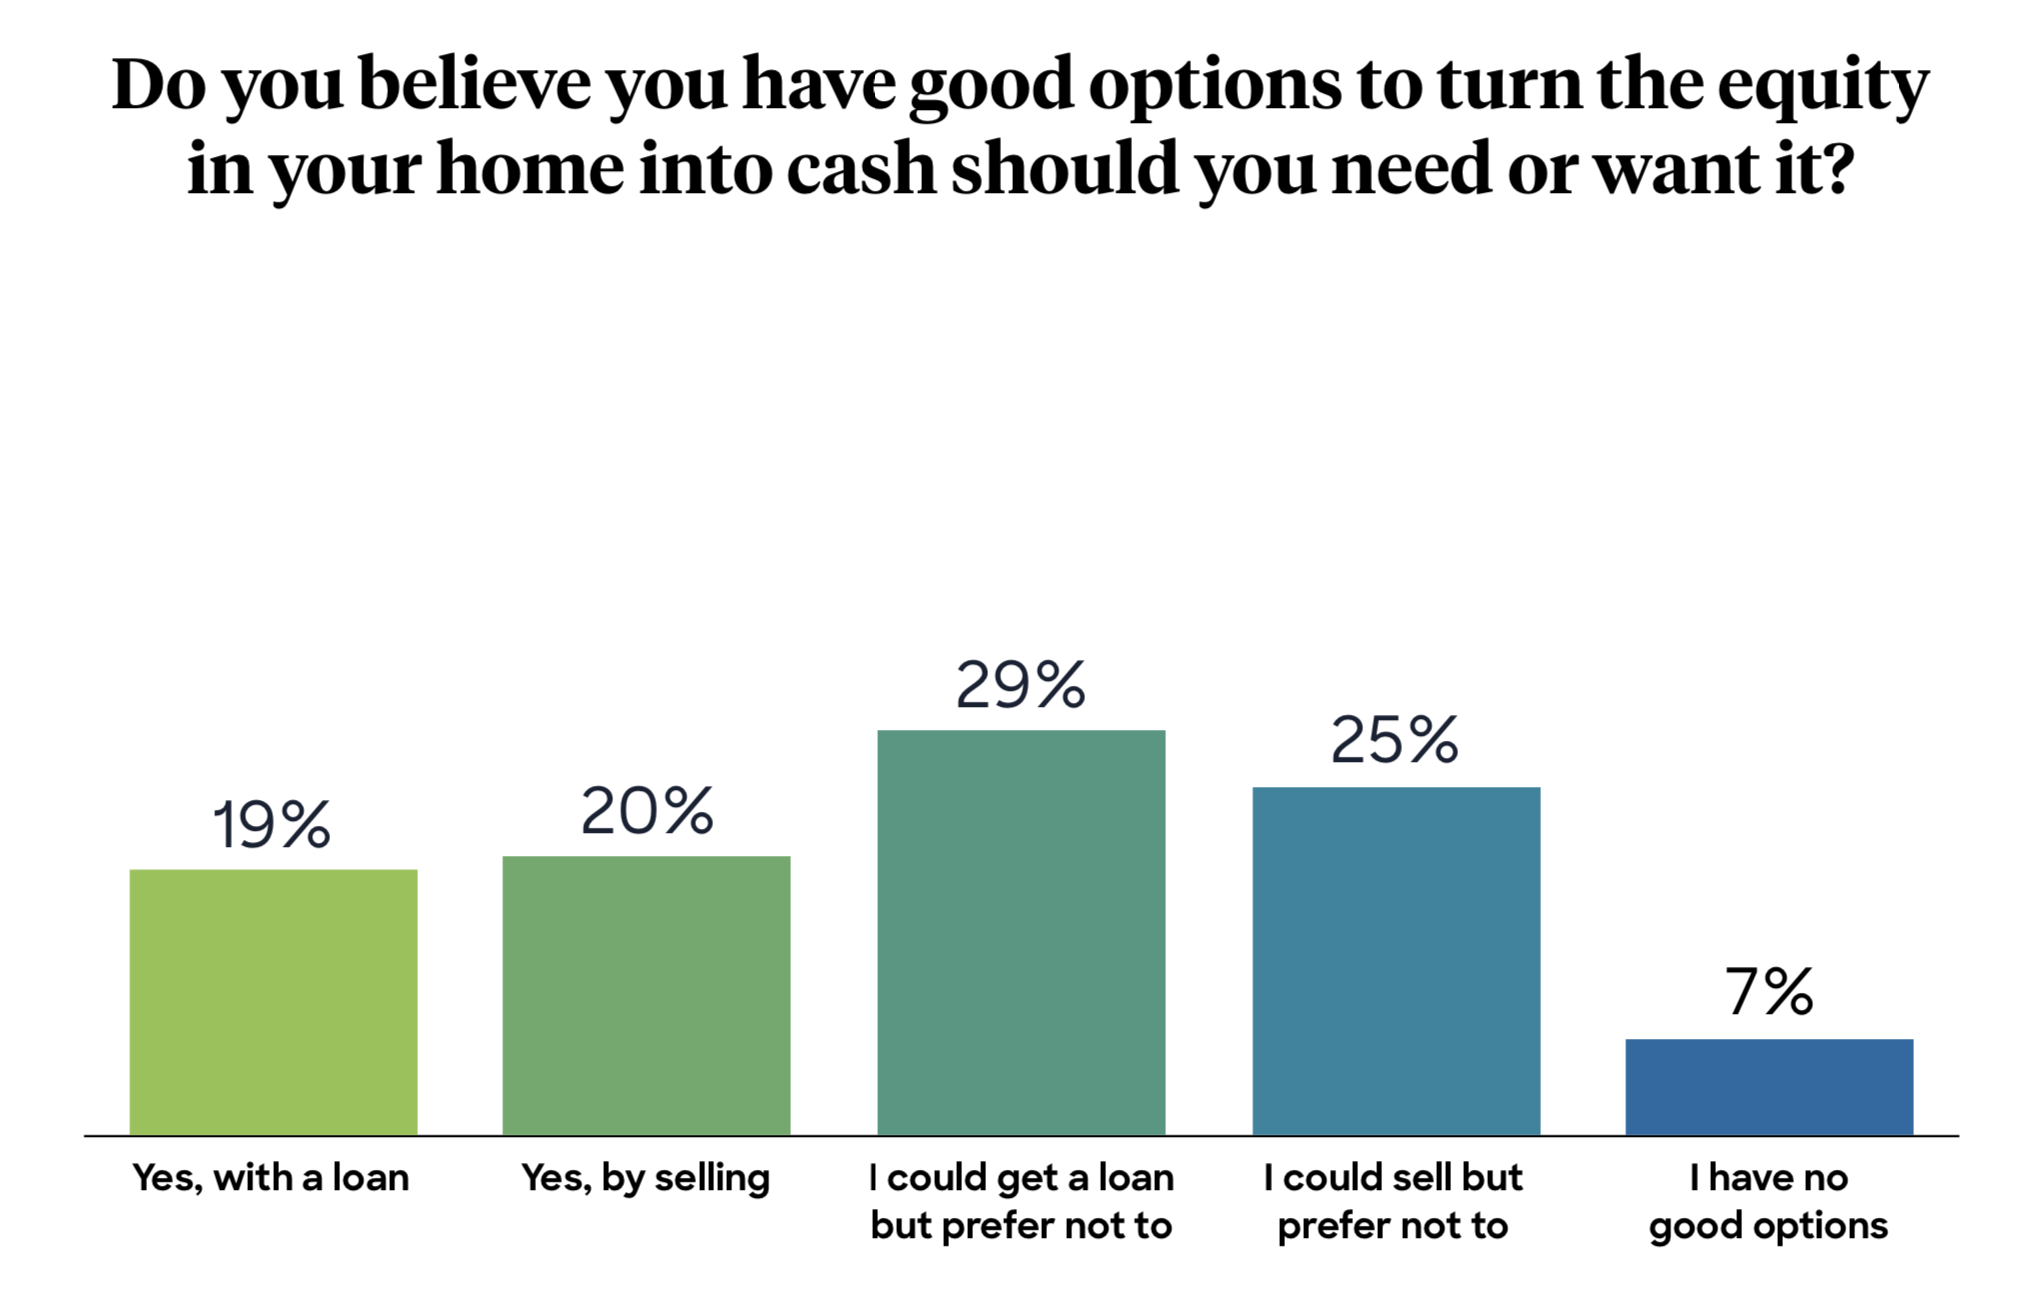 Do you believe you have good options to turn the equity in your home into cash?